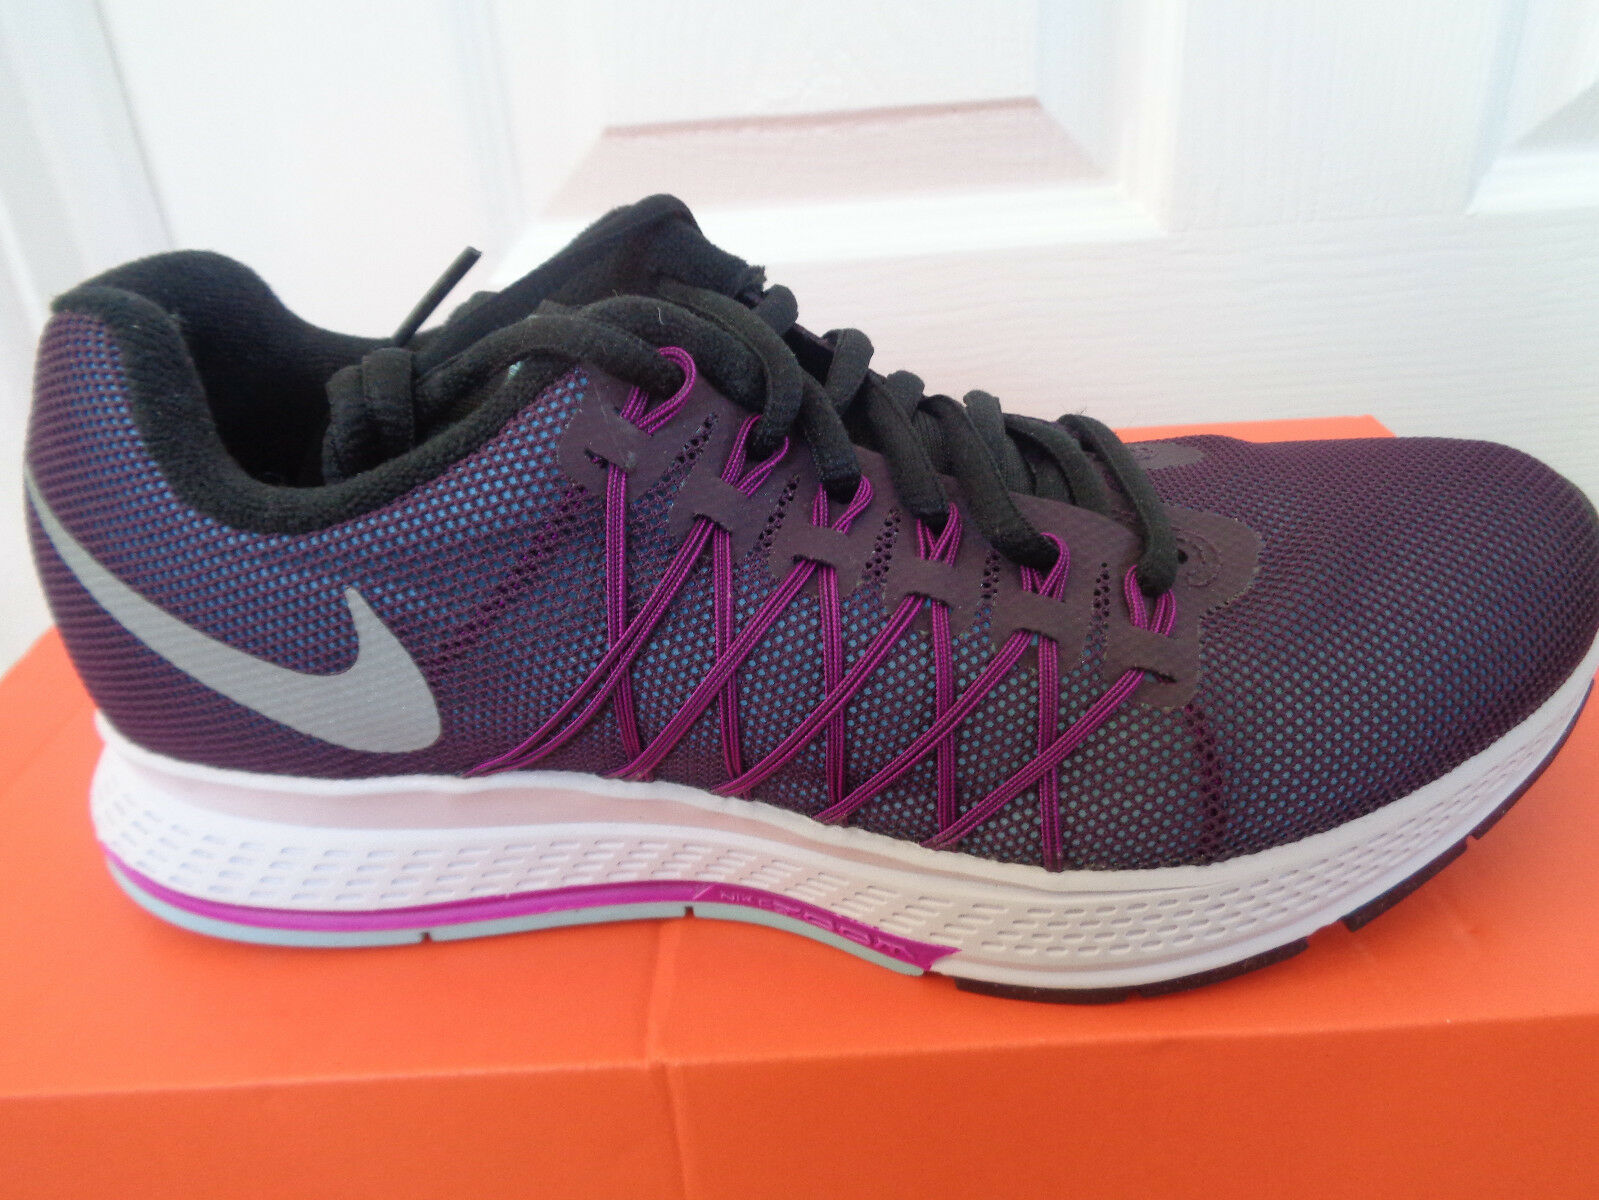 Nike Air Zoom Zoom Zoom pegasus 32 Flash trainers 806577 500 uk 3 eu 36 us 5.5 NEW+BOX b7ce65